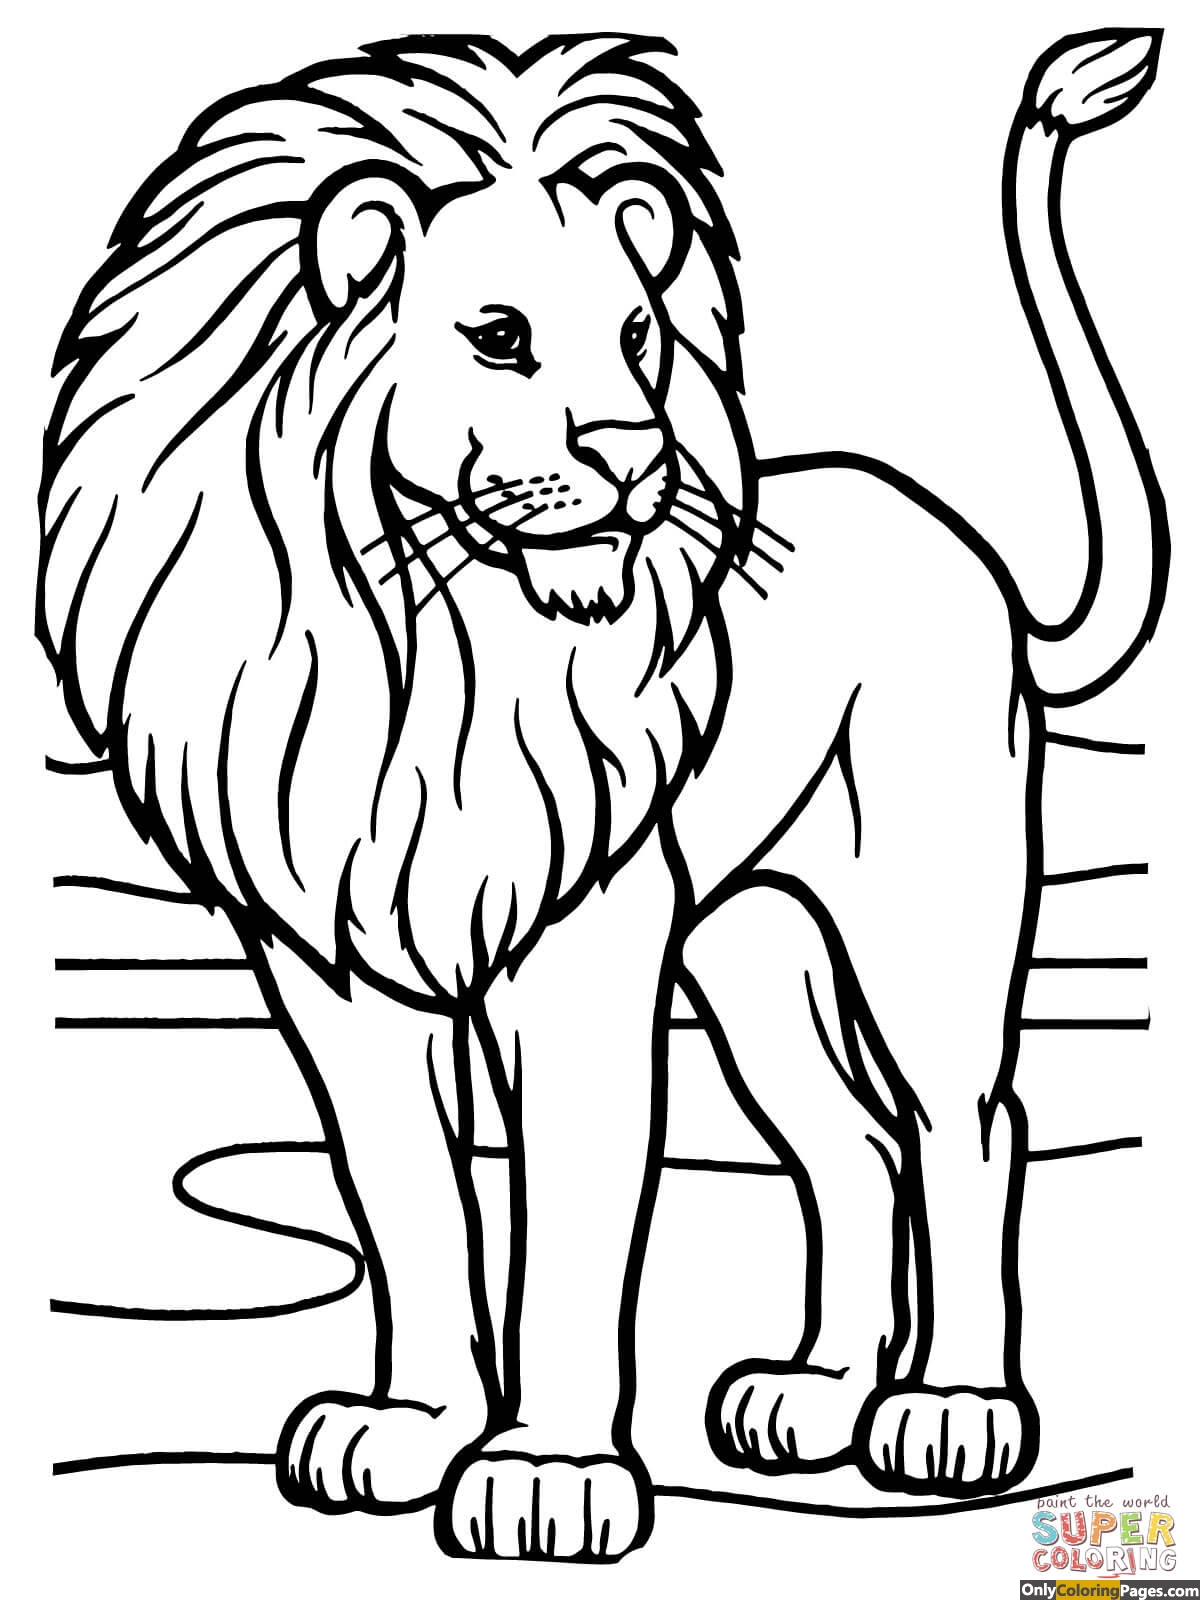 Boxtrolls coloring pages -  Lion Coloring Pages African Lion Only Coloring Pages